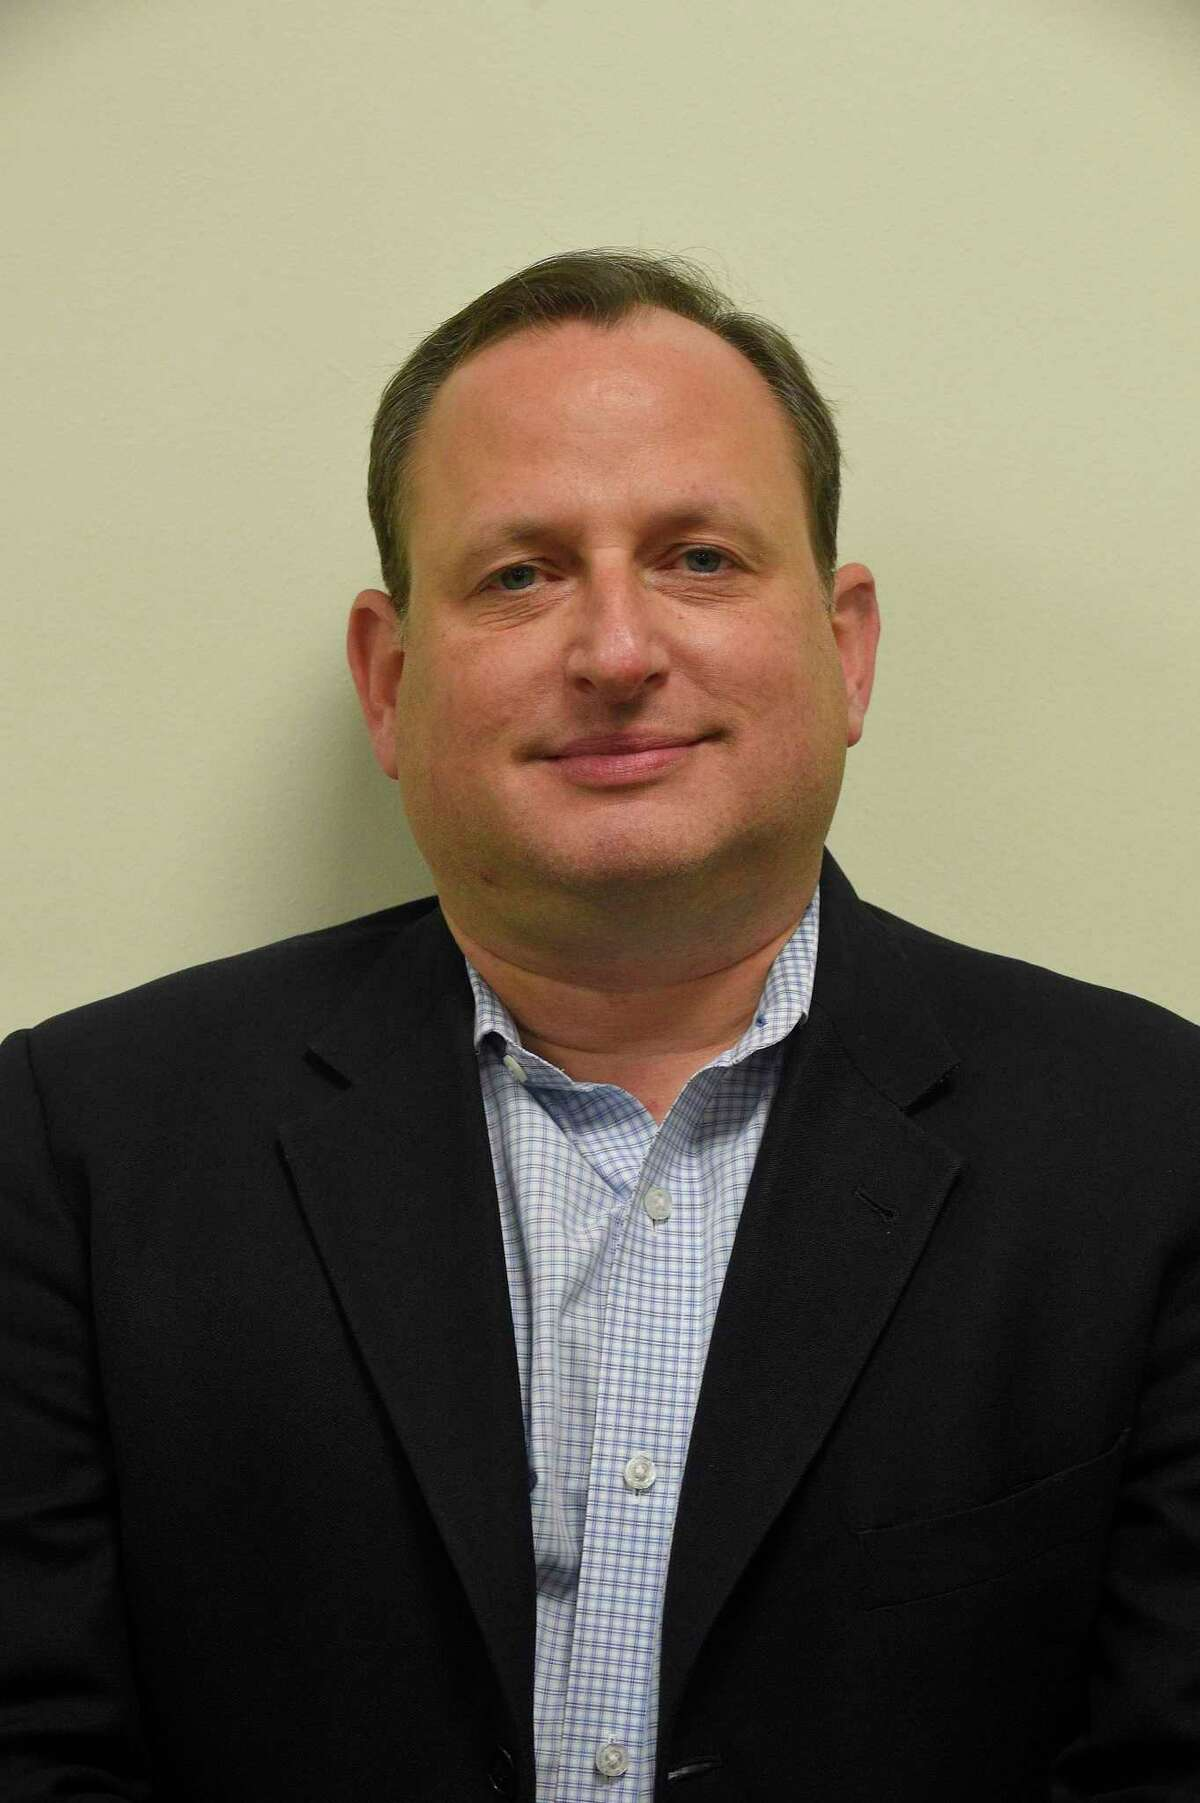 Peter Bernstein, Chair of the Greenwich Board of Education Nov. 21, 2019.